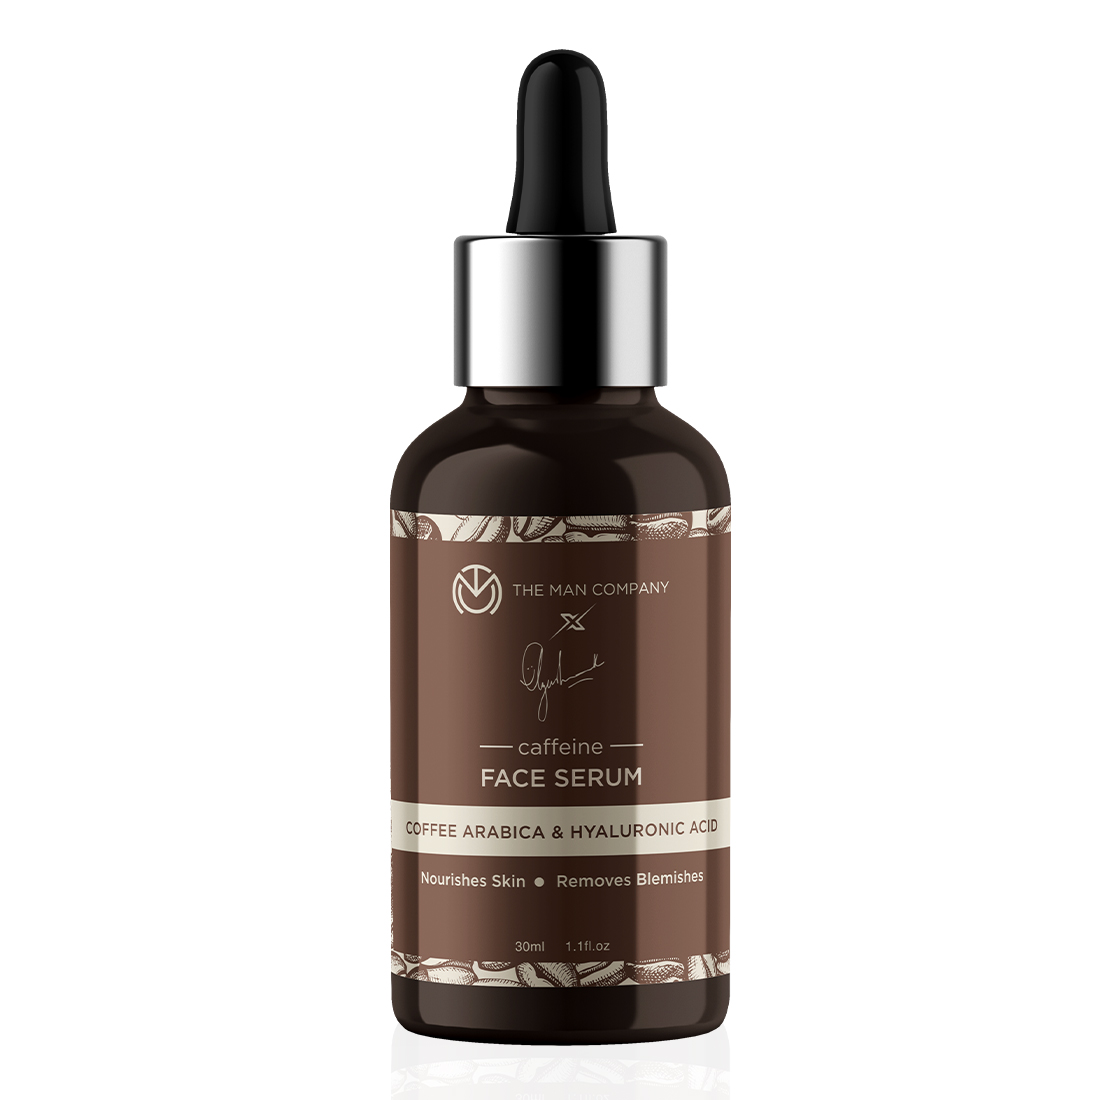 The Man Company Caffeine Face Serum by Ayushmann Khurrana with Coffee Arabica and Hyaluronic Acid (30 ml)